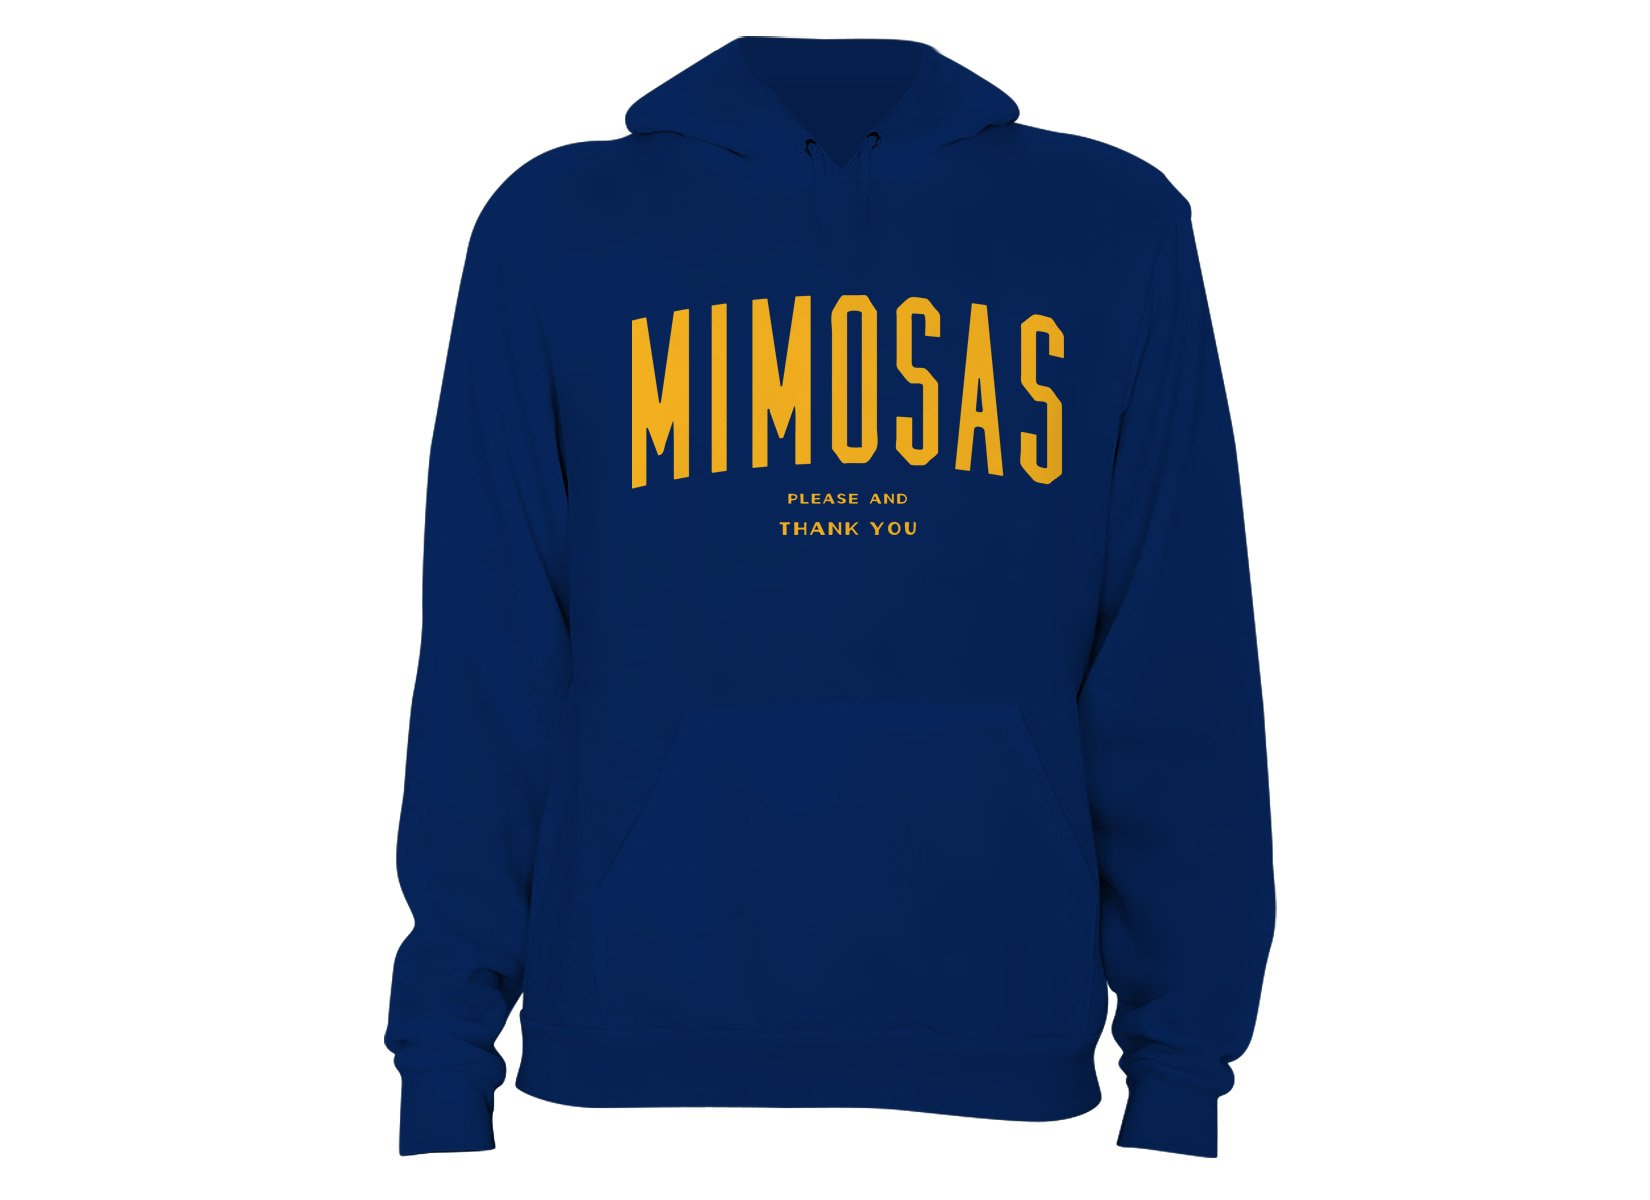 Mimosas Please And Thank You on Hoodie